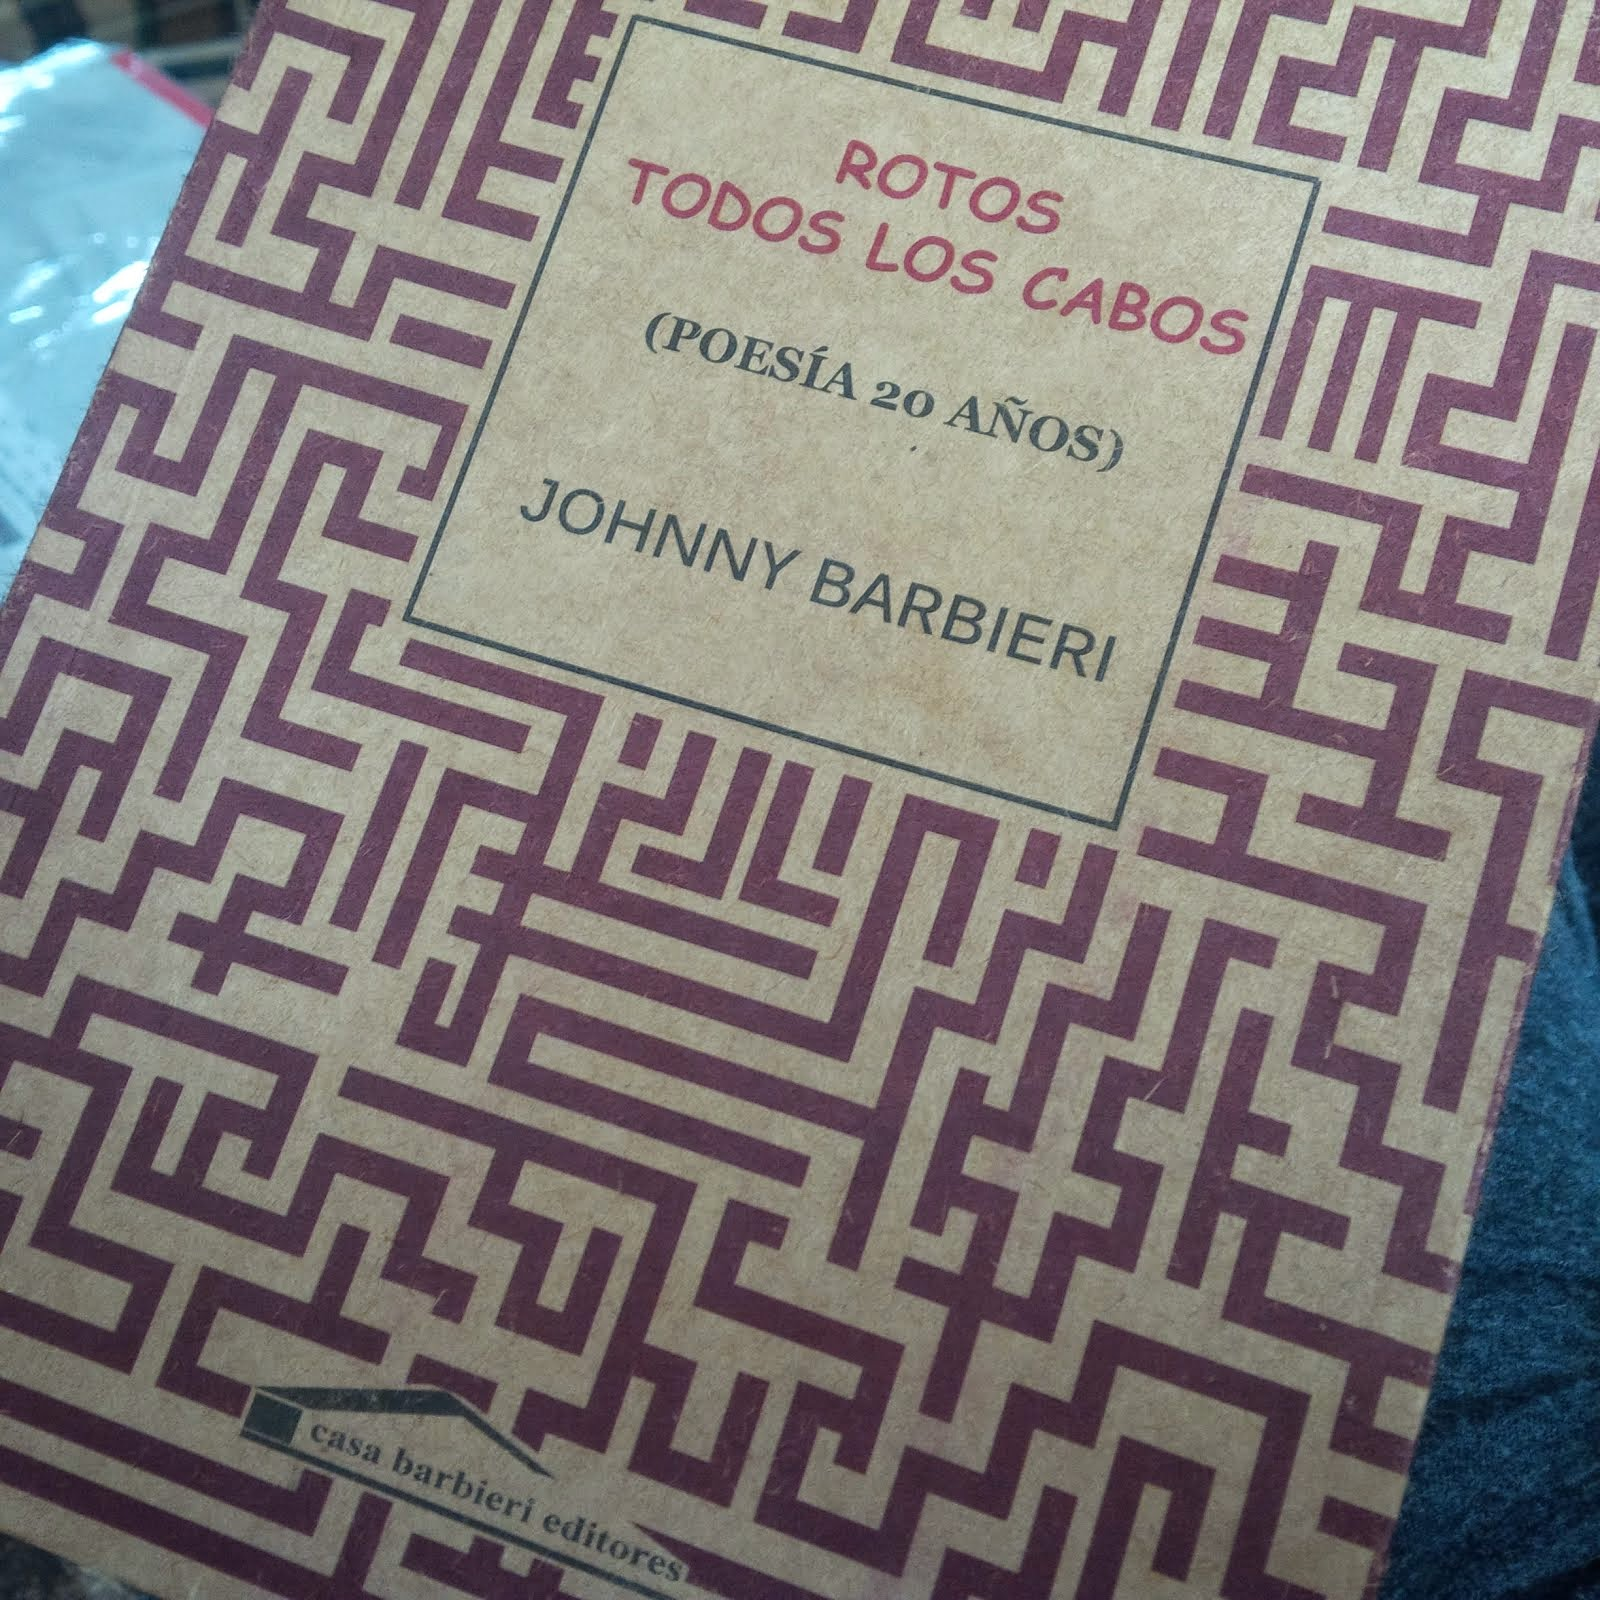 poemario de Johnny Barbieri